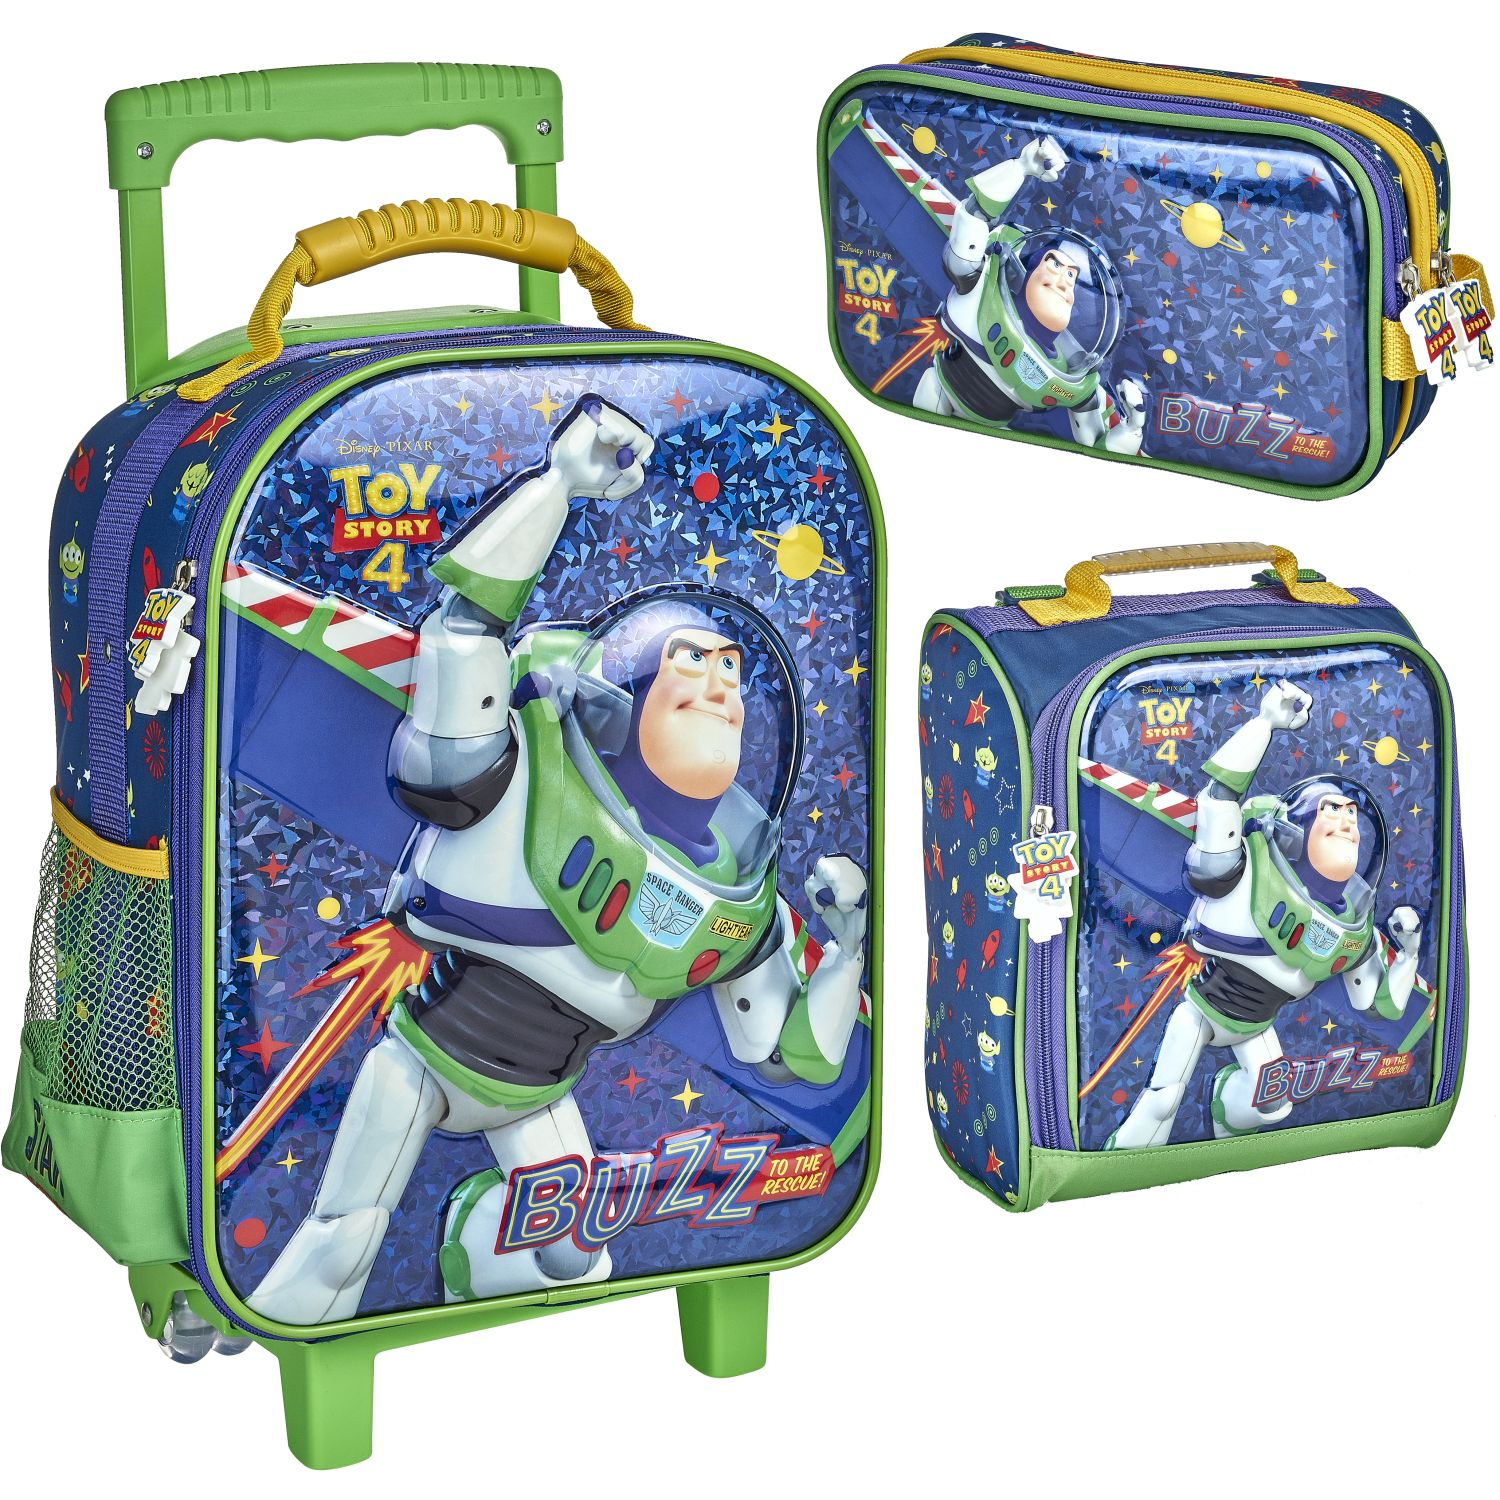 Toy Story 20 SCOOL TOY STORY SET EVA 6D NEW MED Azul / verde Mochilas